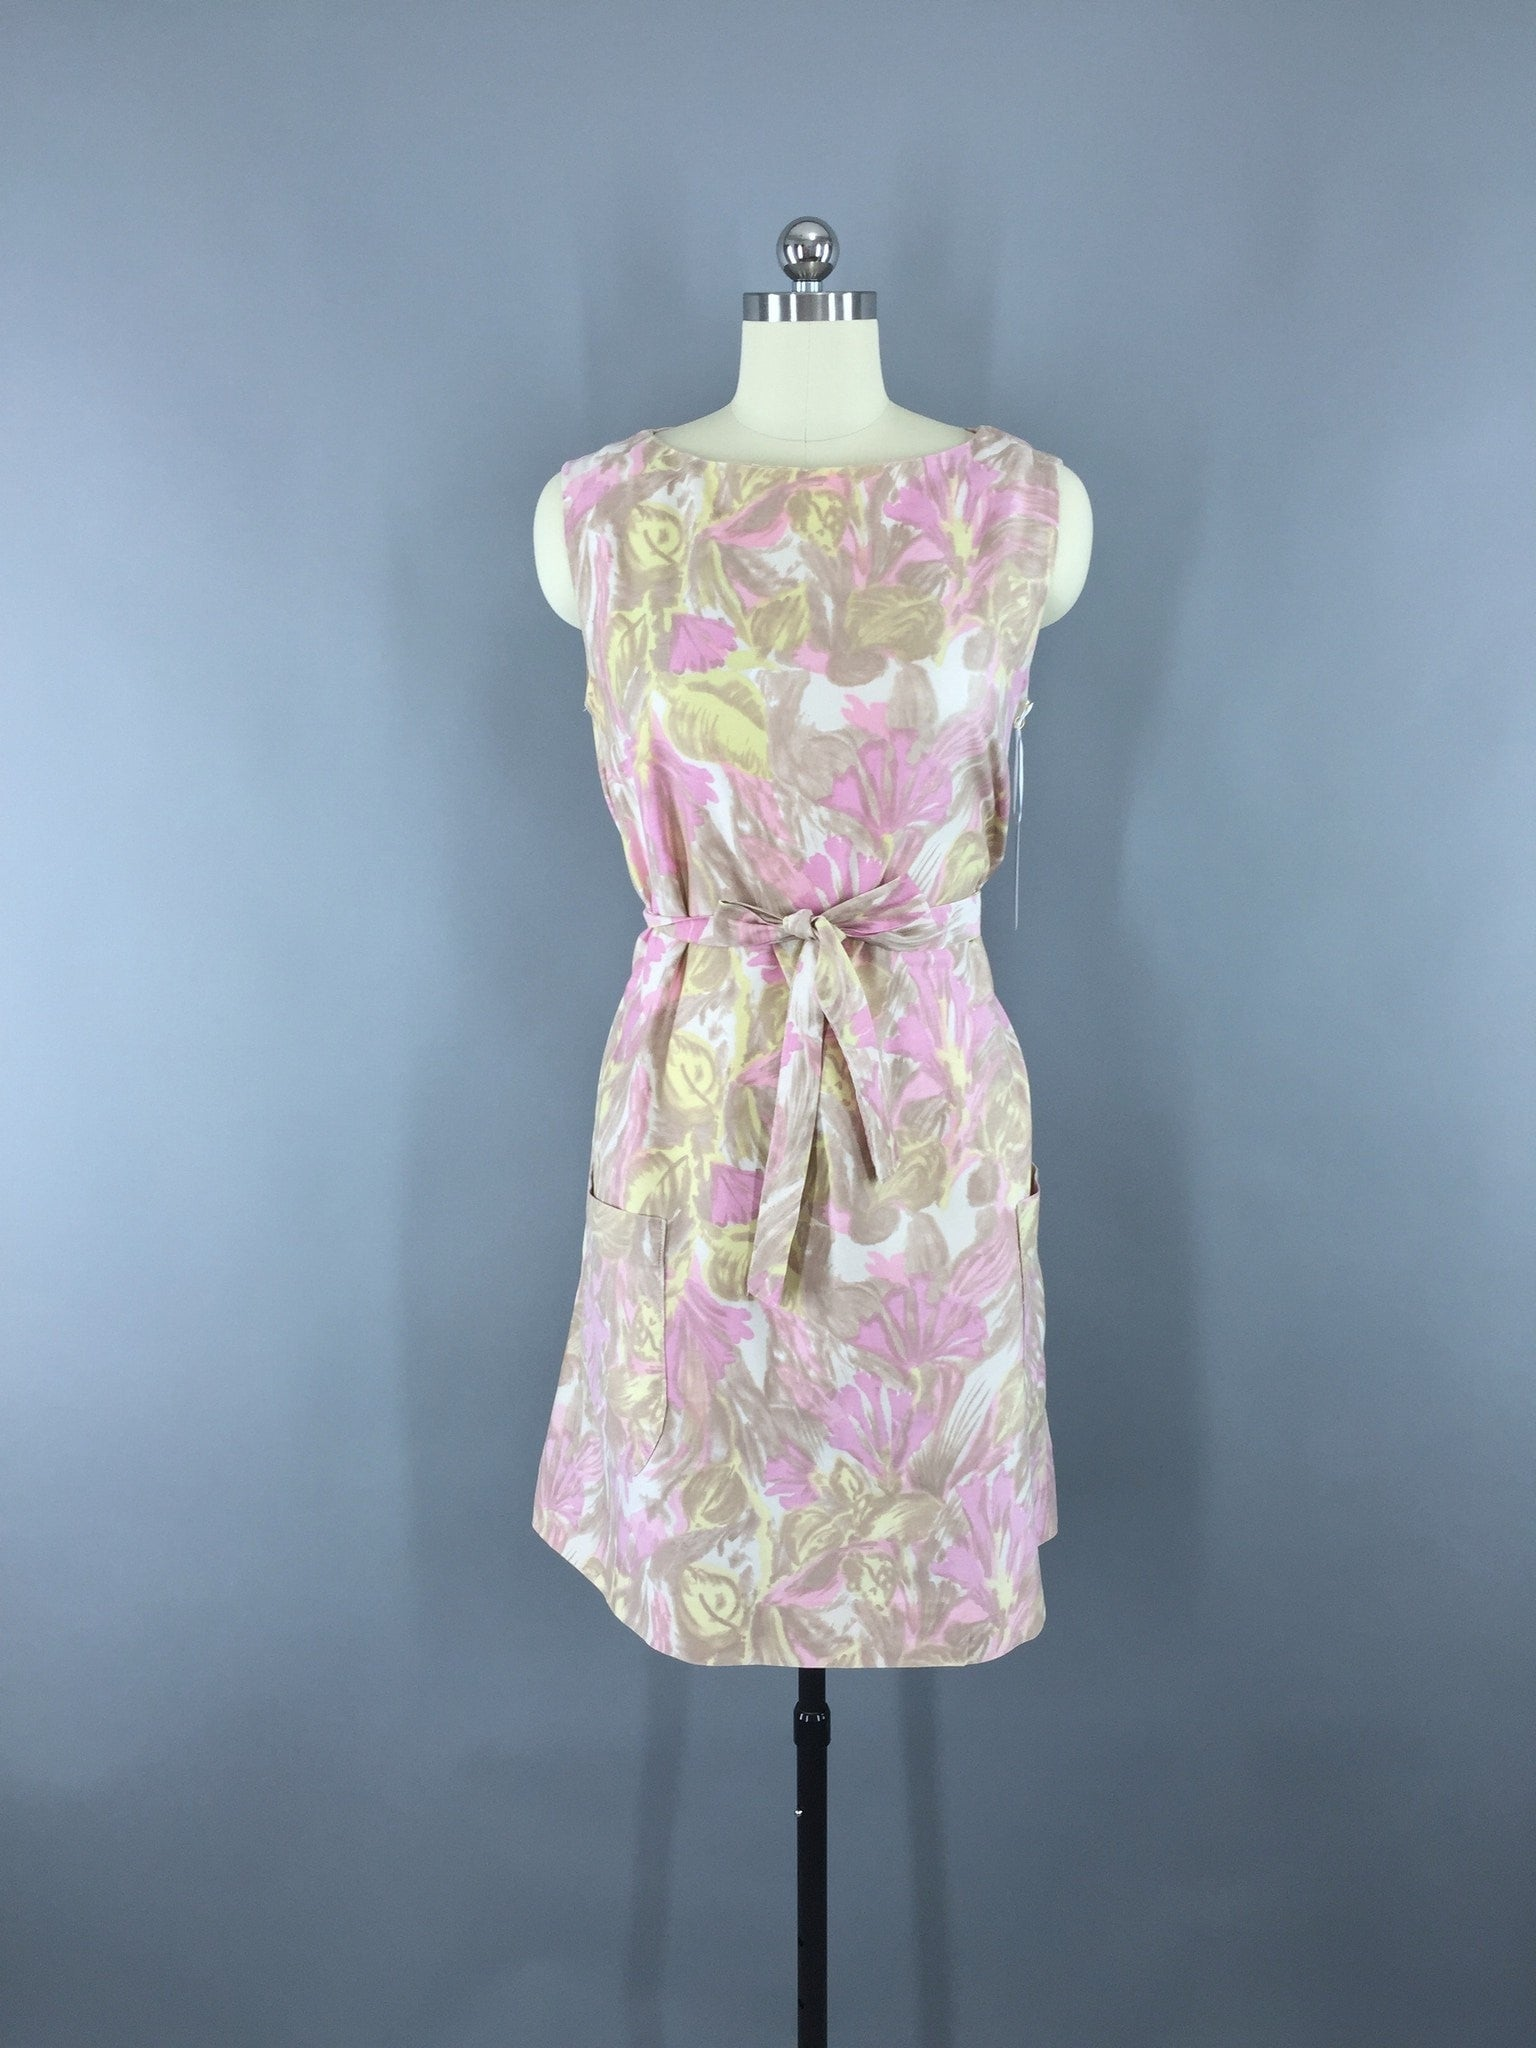 1960s Vintage Pink Floral Print Shift Dress Dress ThisBlueBird - Sale